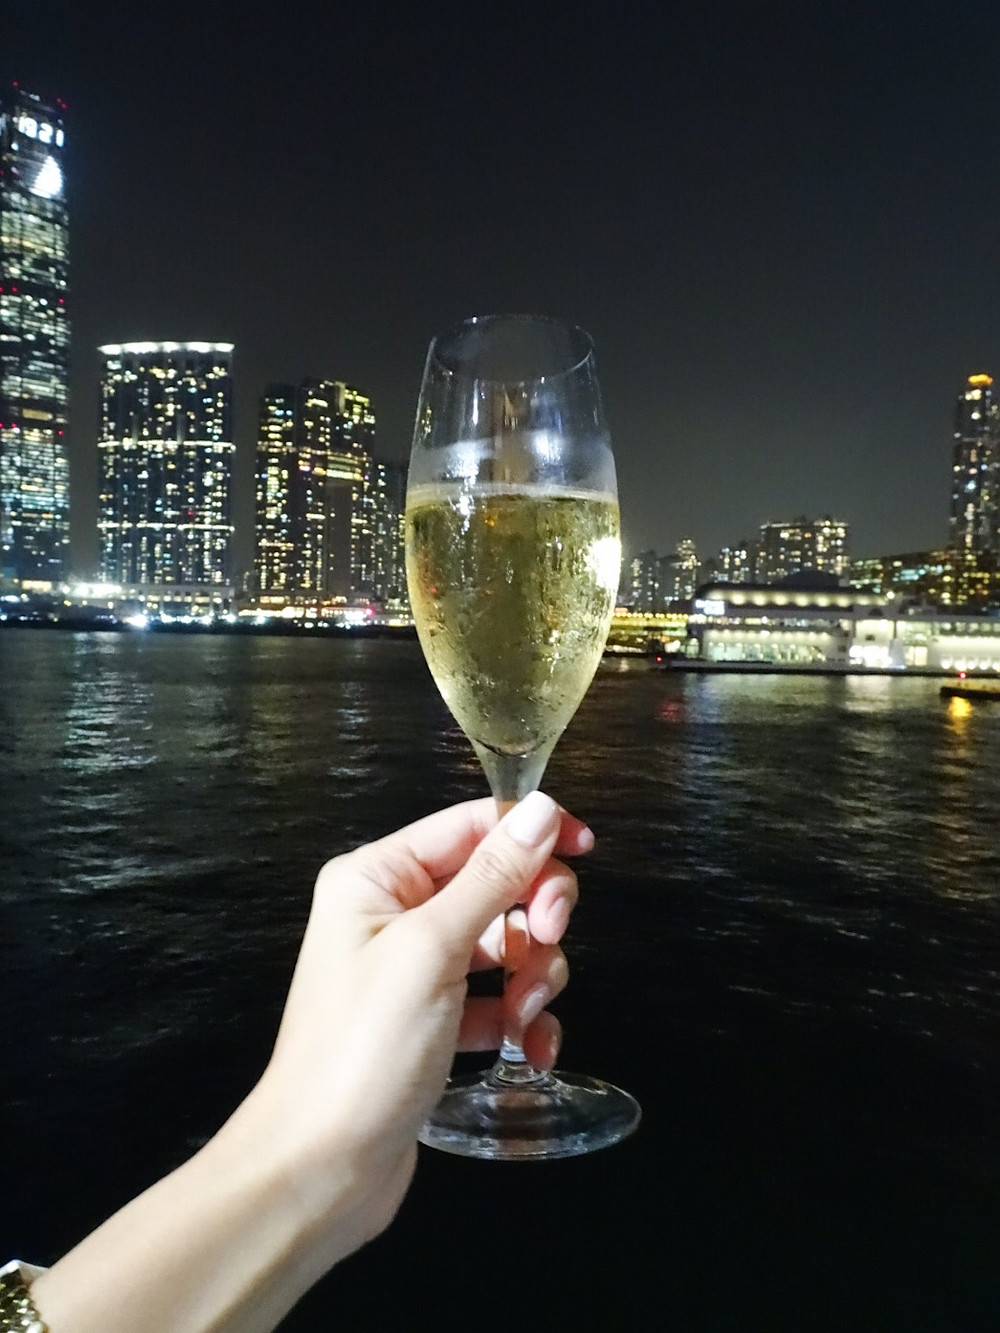 Champagne at Artisan de la Truffe restaurant in Hong Kong